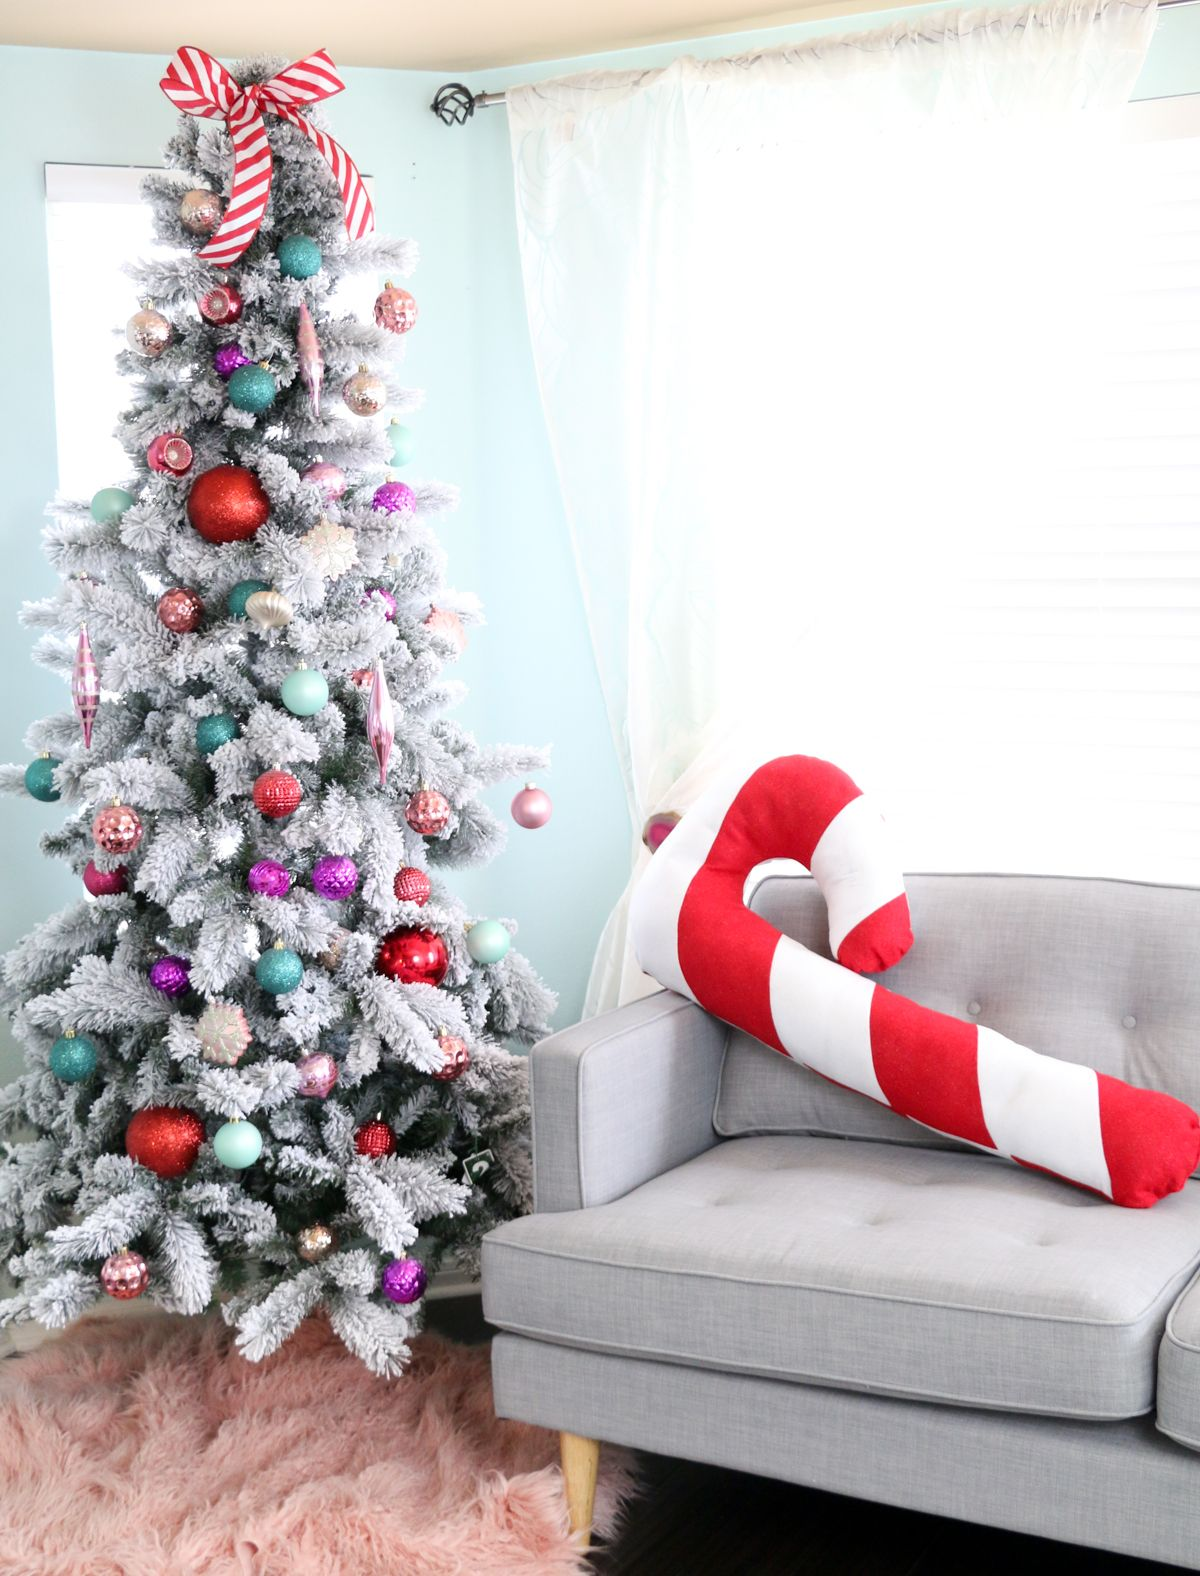 Large Candy Cane Decorations Make A Festive Giant Candy Cane Pillow For Christmas  Candy Canes